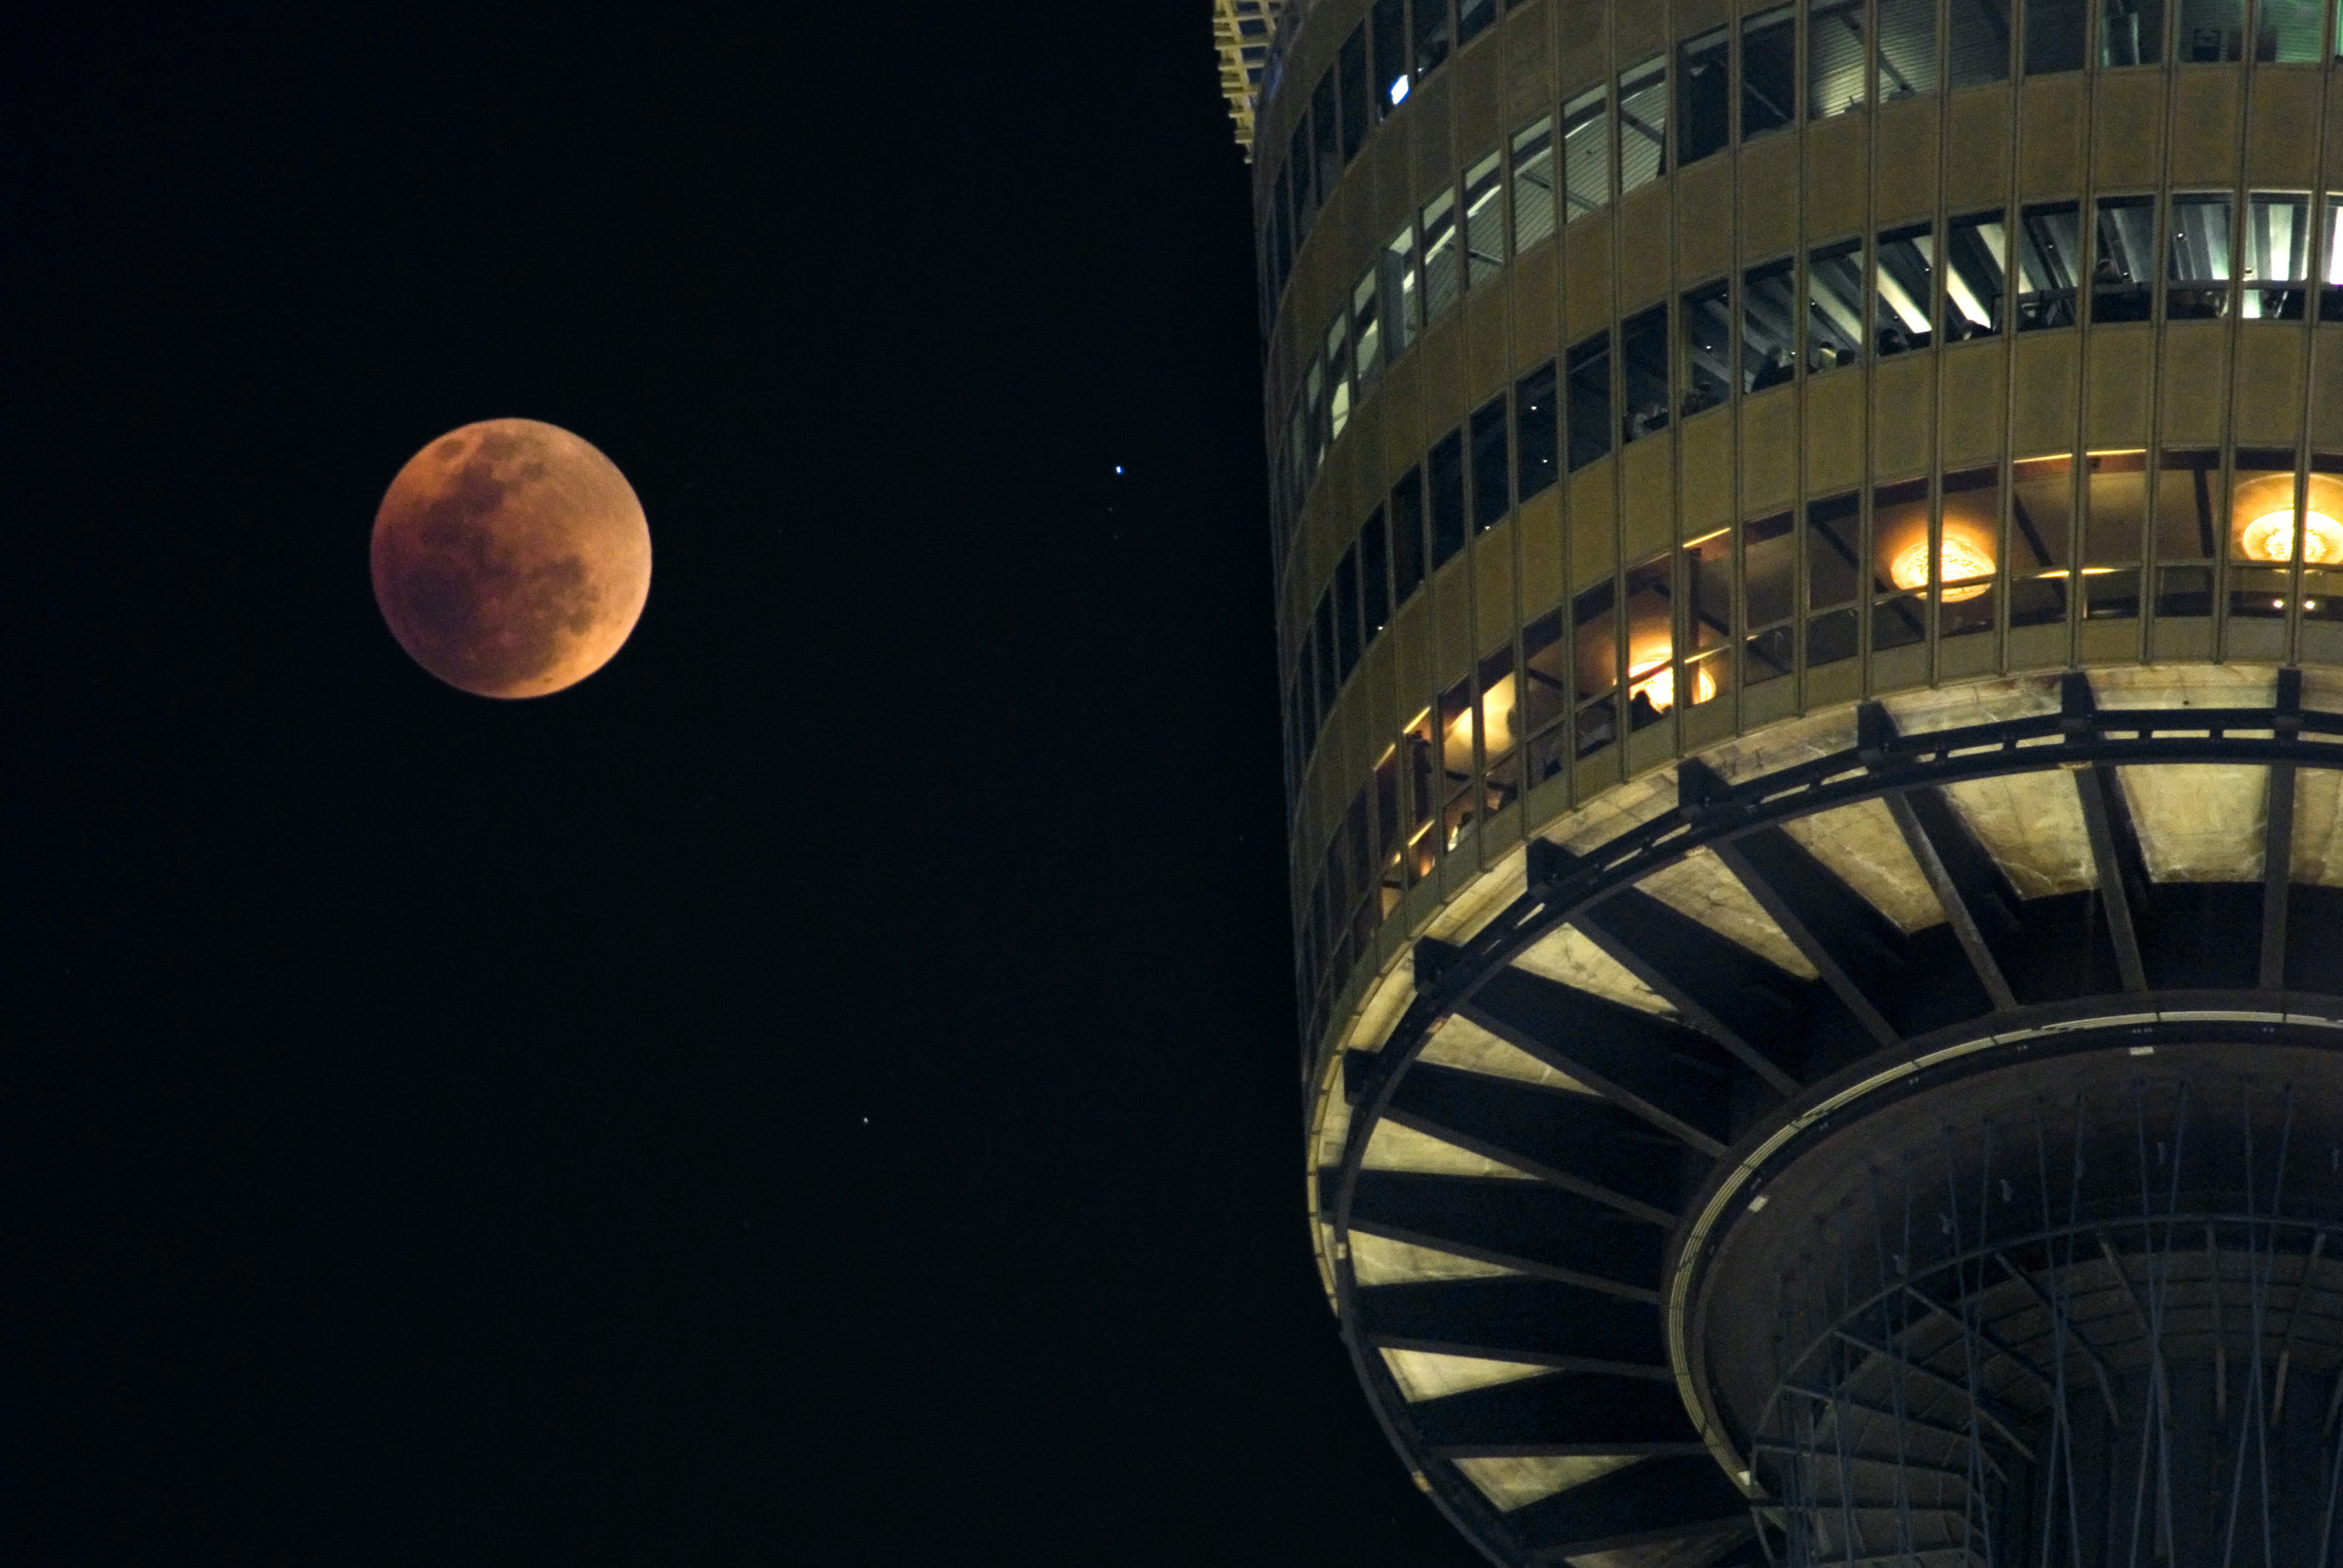 Lunar eclipse in a dark sky with a red colored full moon alongside an illuminated tower observsatory